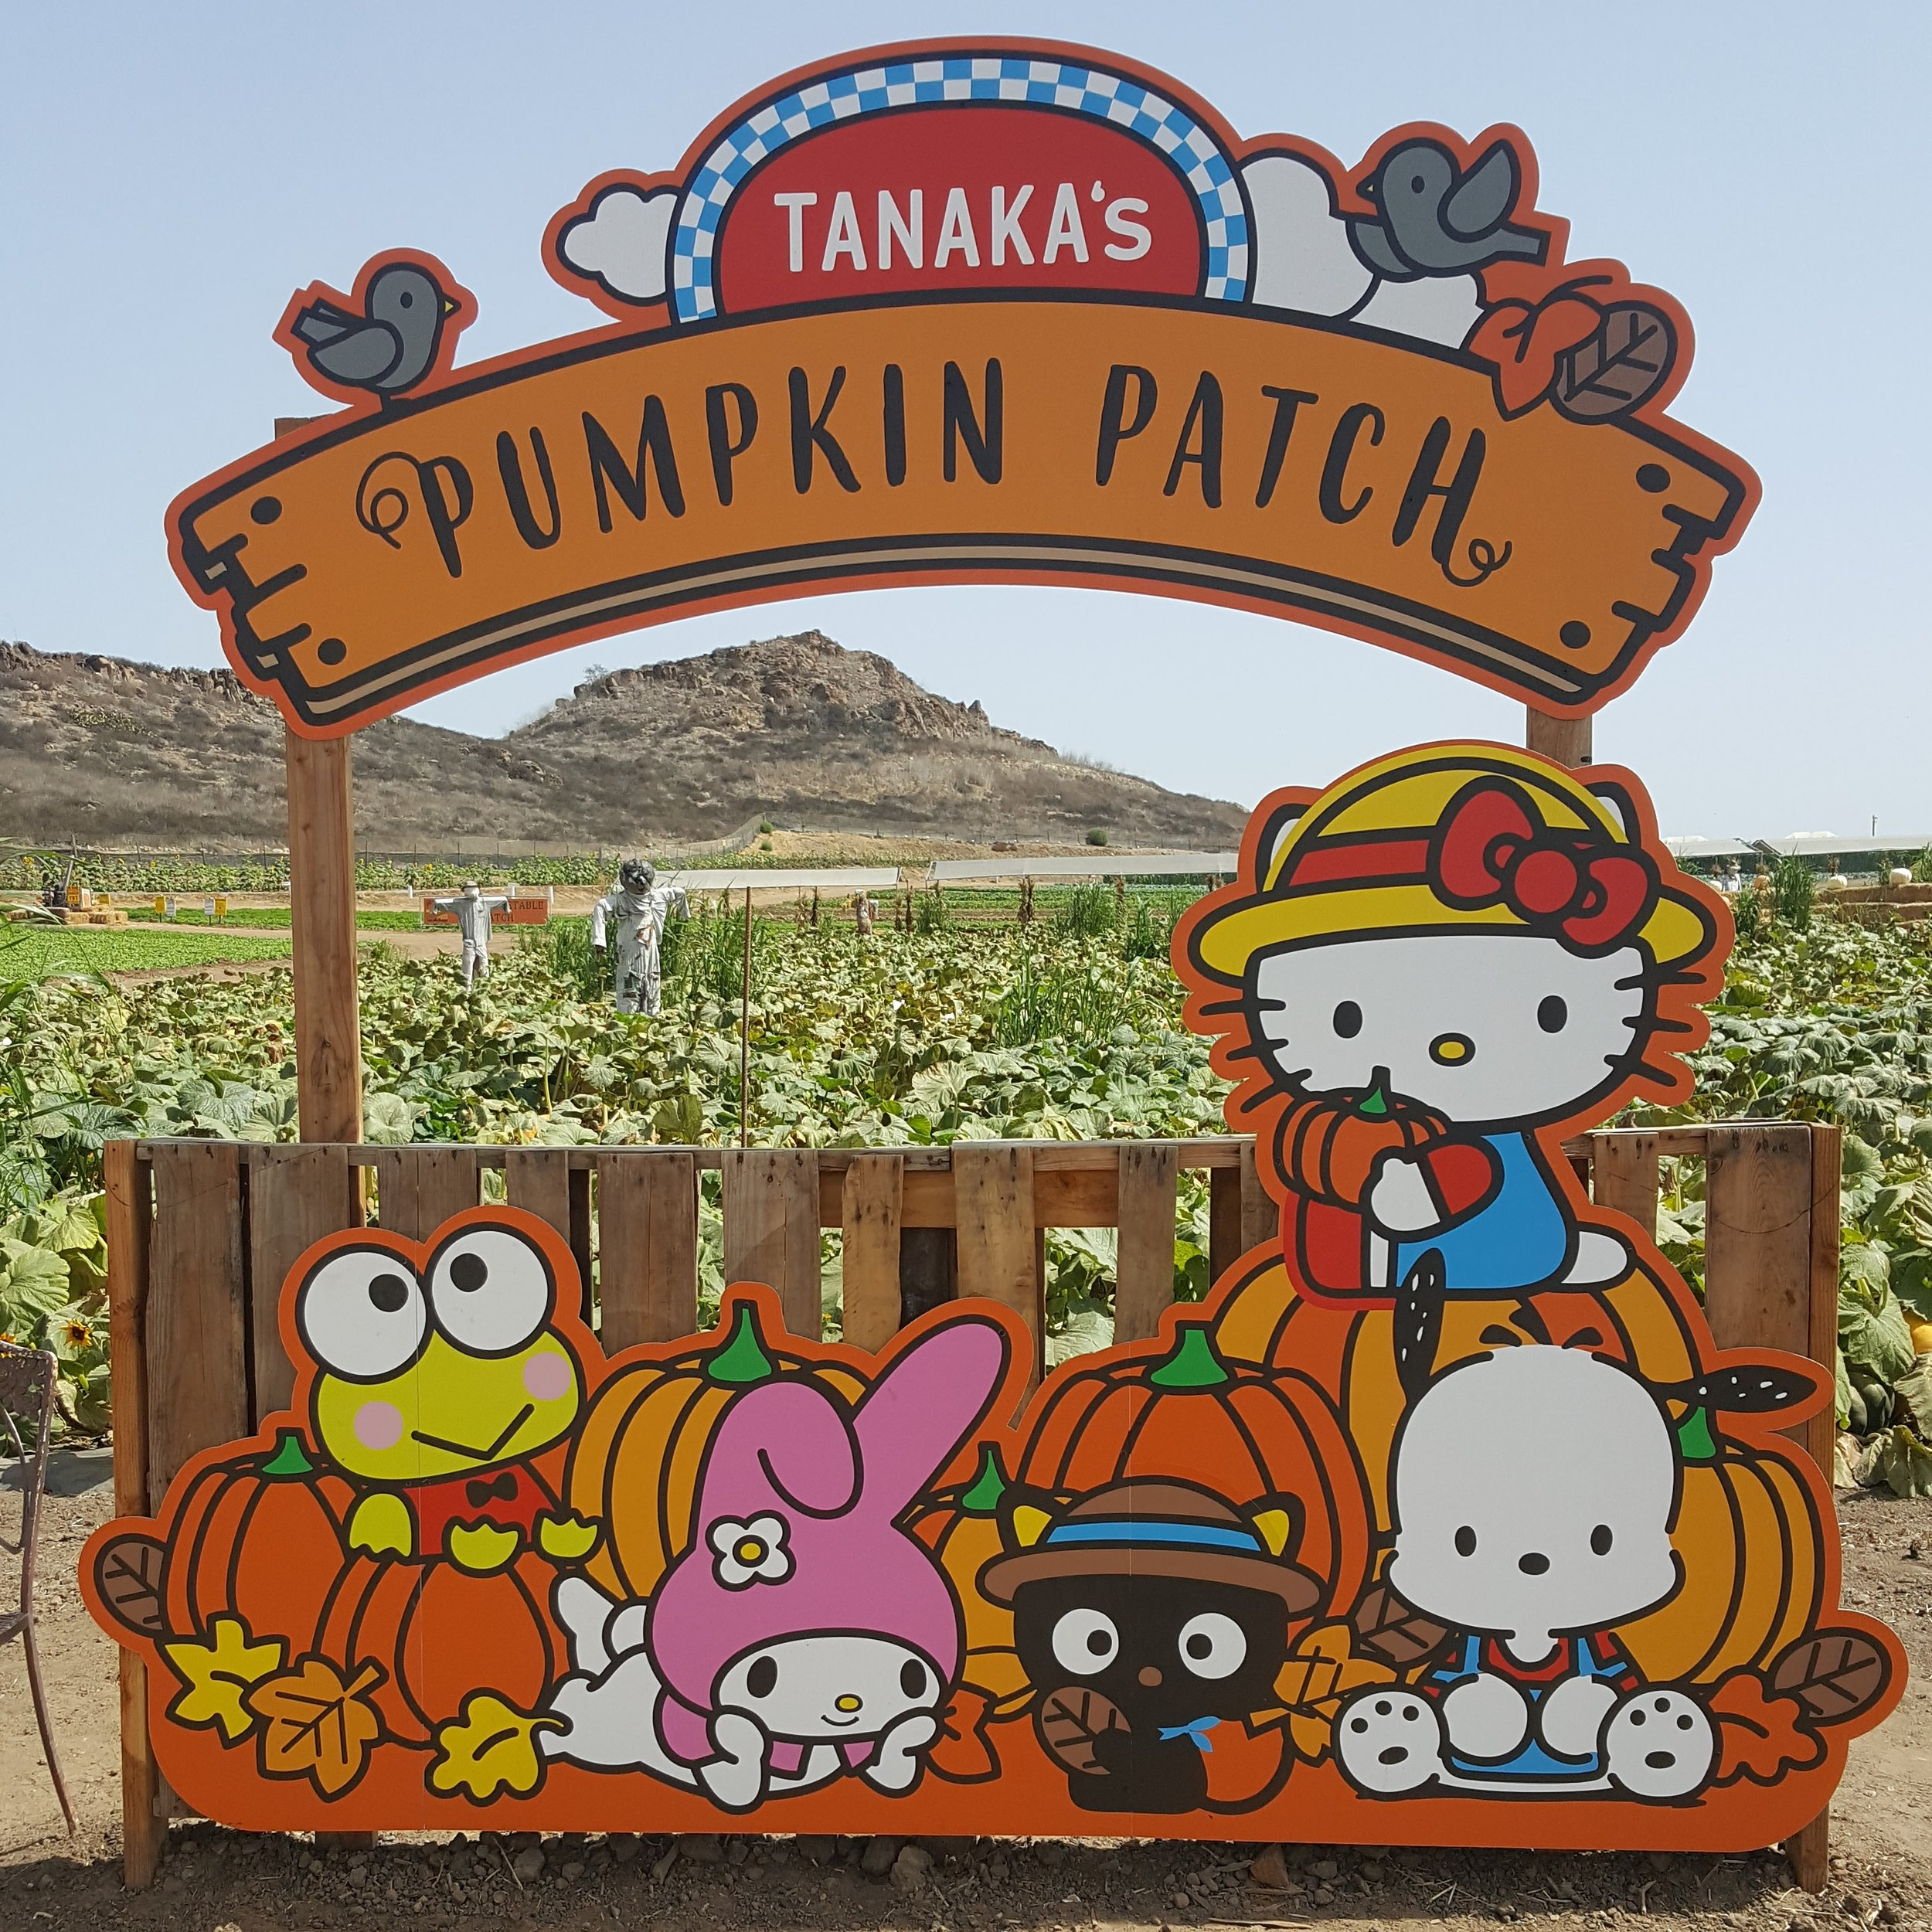 As a result of their partnership with Sanrio, Tanaka Farms has Hello Kitty-themed events and merchandise.